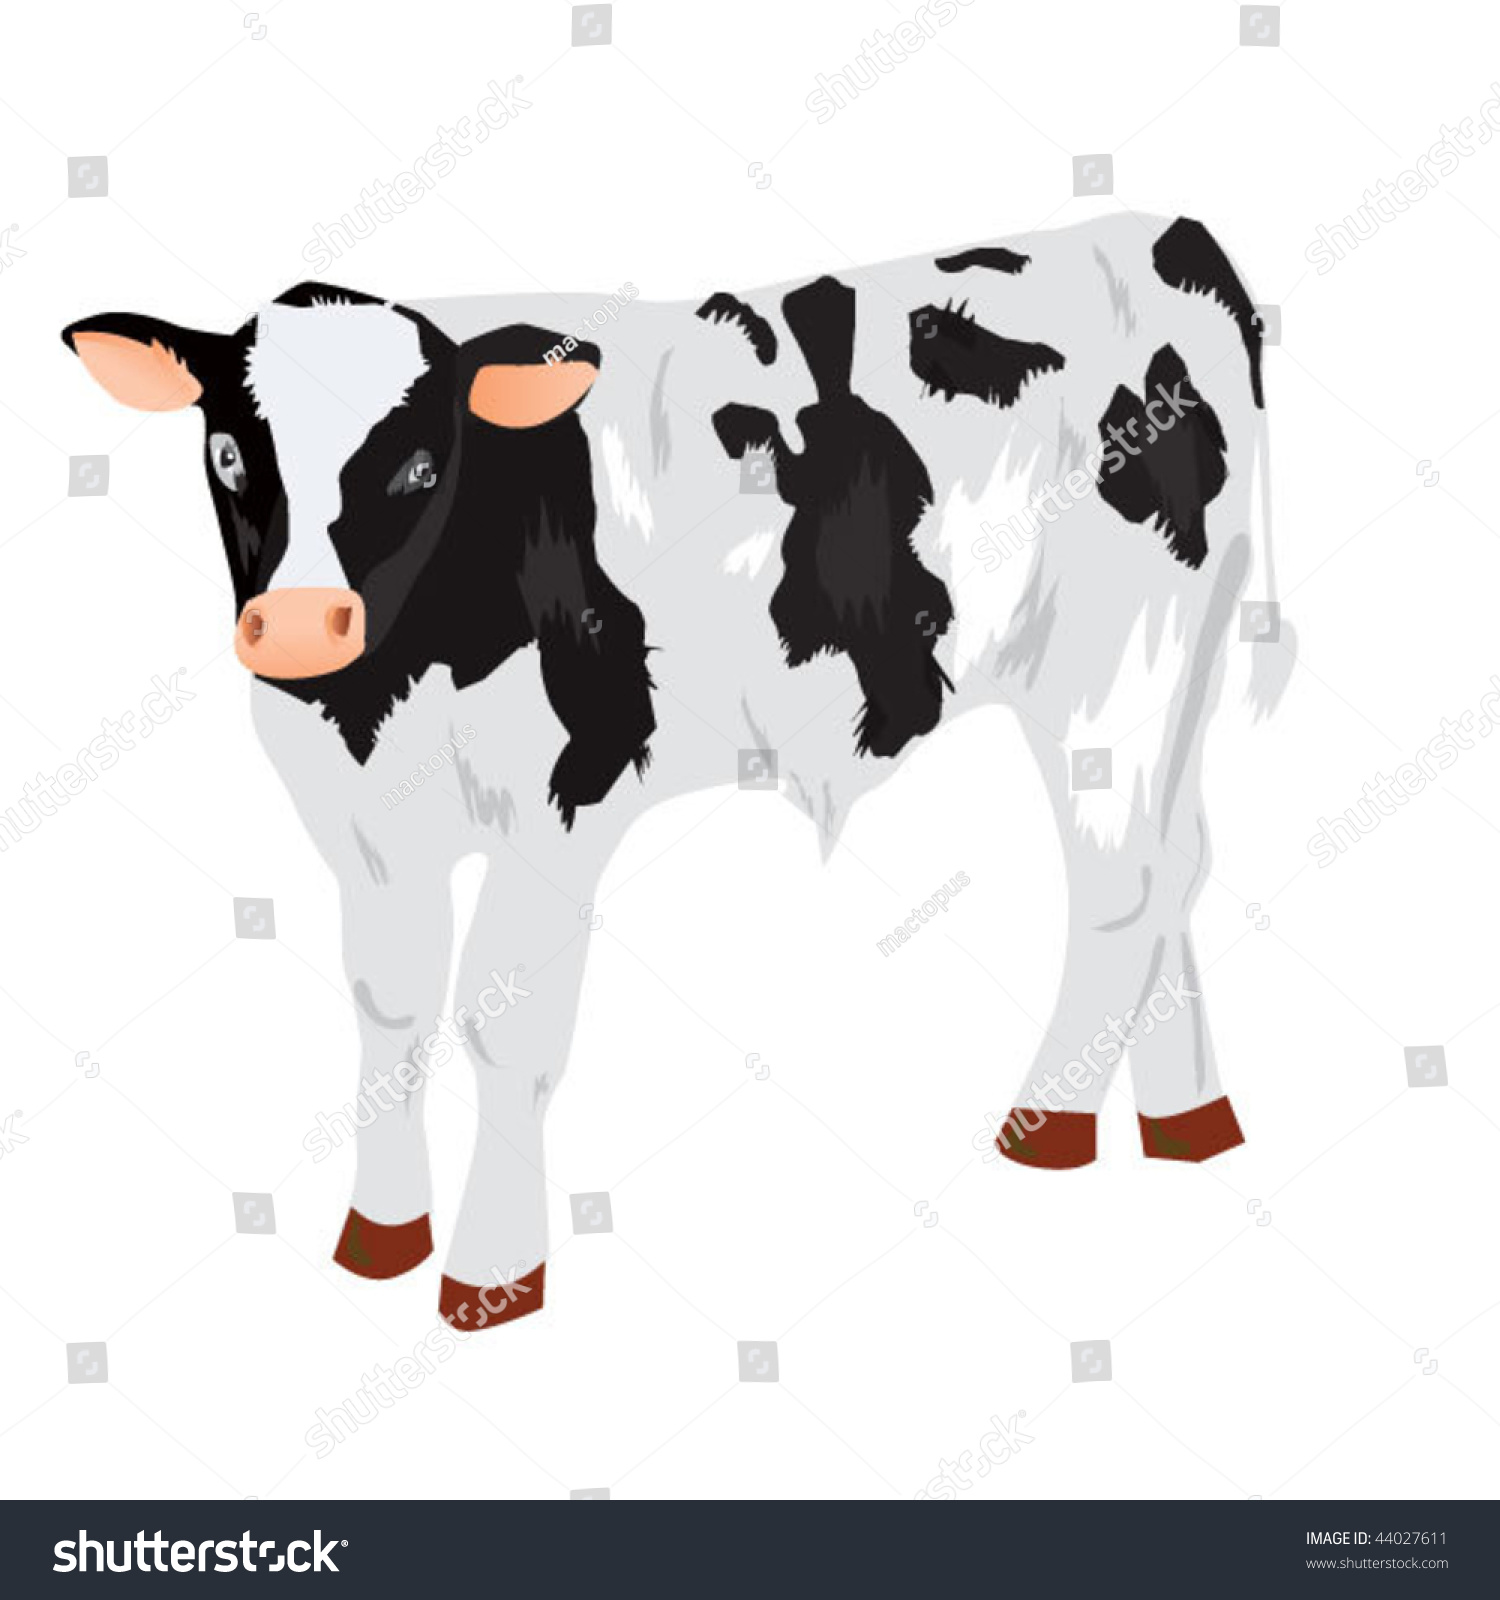 Little Cow Calf Vector Illustration Stock Vector 44027611 ... for Cow And Calf Clipart  70ref